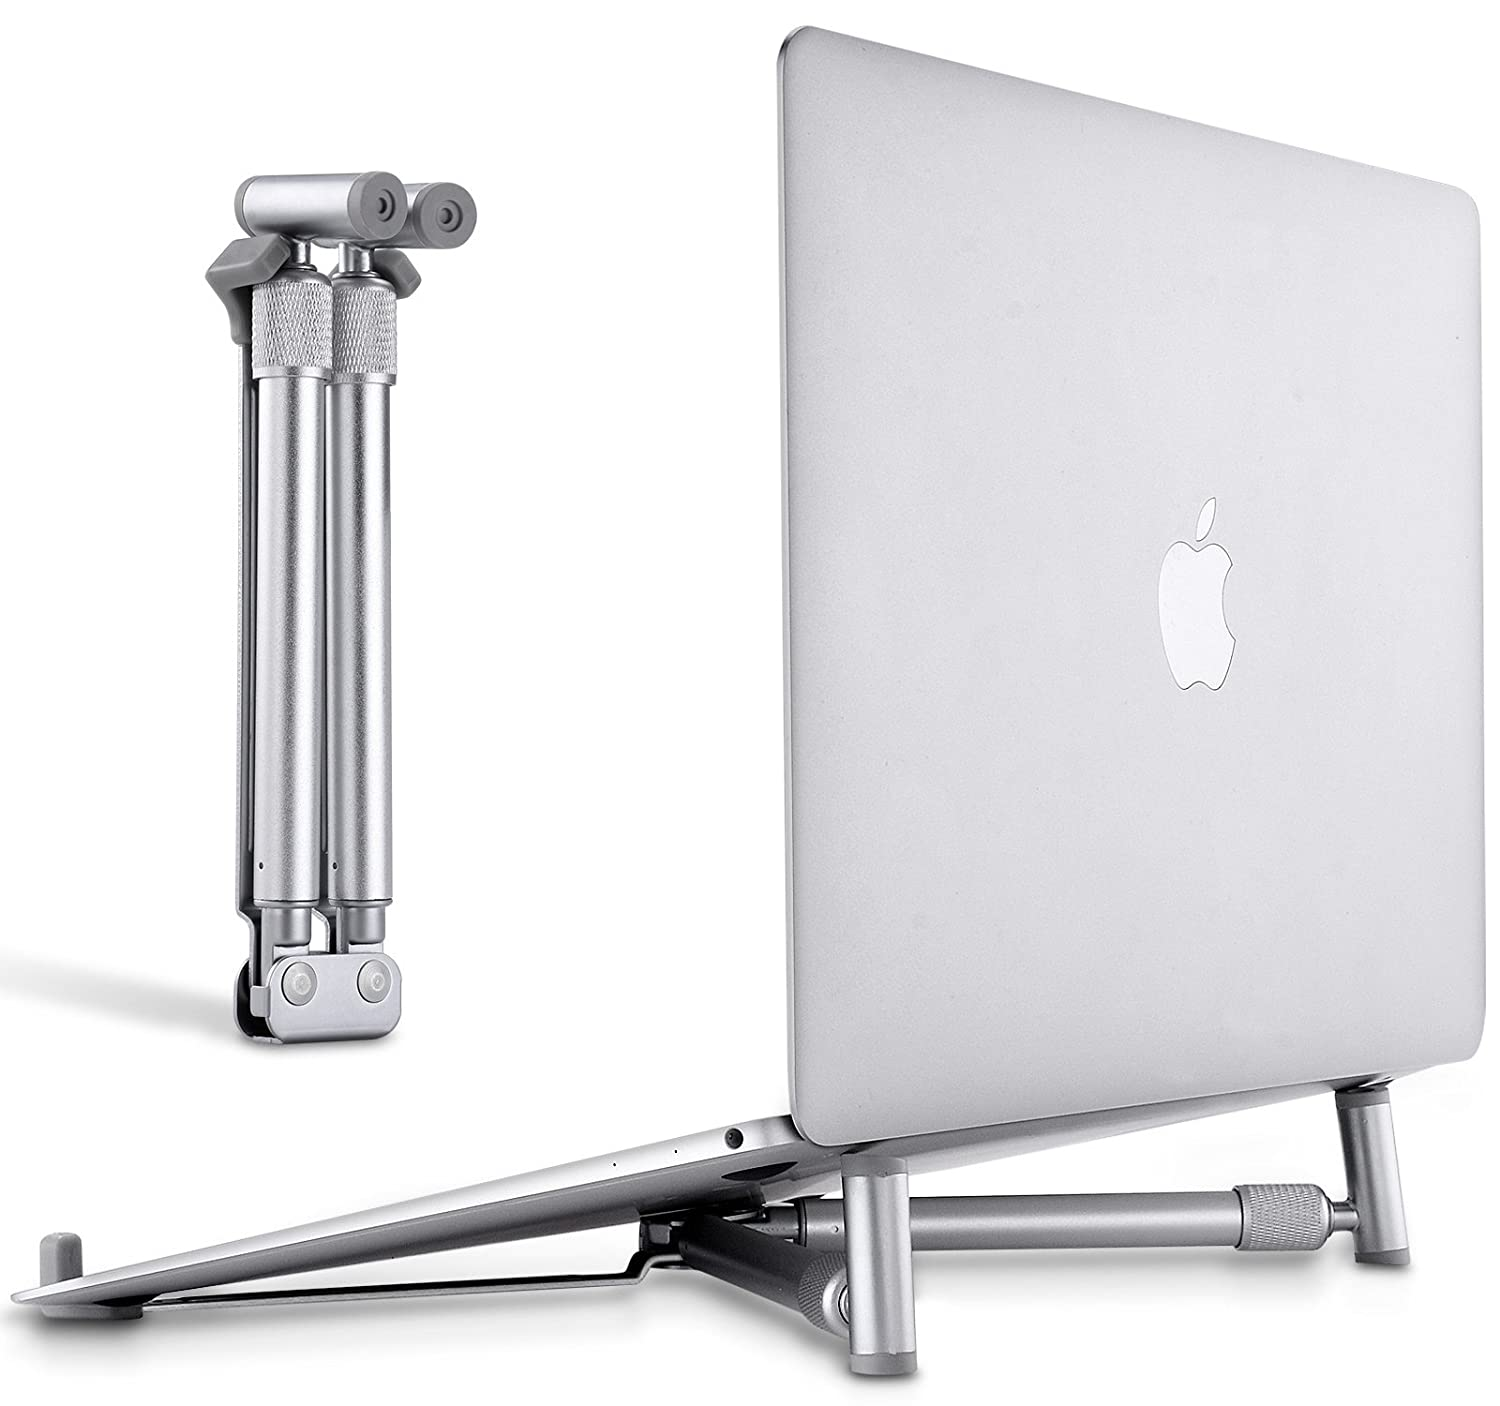 "JUBOR Laptop Base Stand for MacBook Pro Computer Lap Notebook, Adjustable Laptop Riser Cooling Aluminium Ventilated Portable Foldable Ergonomic Holder for 12"" 13"" 15"" 17"" Screen"